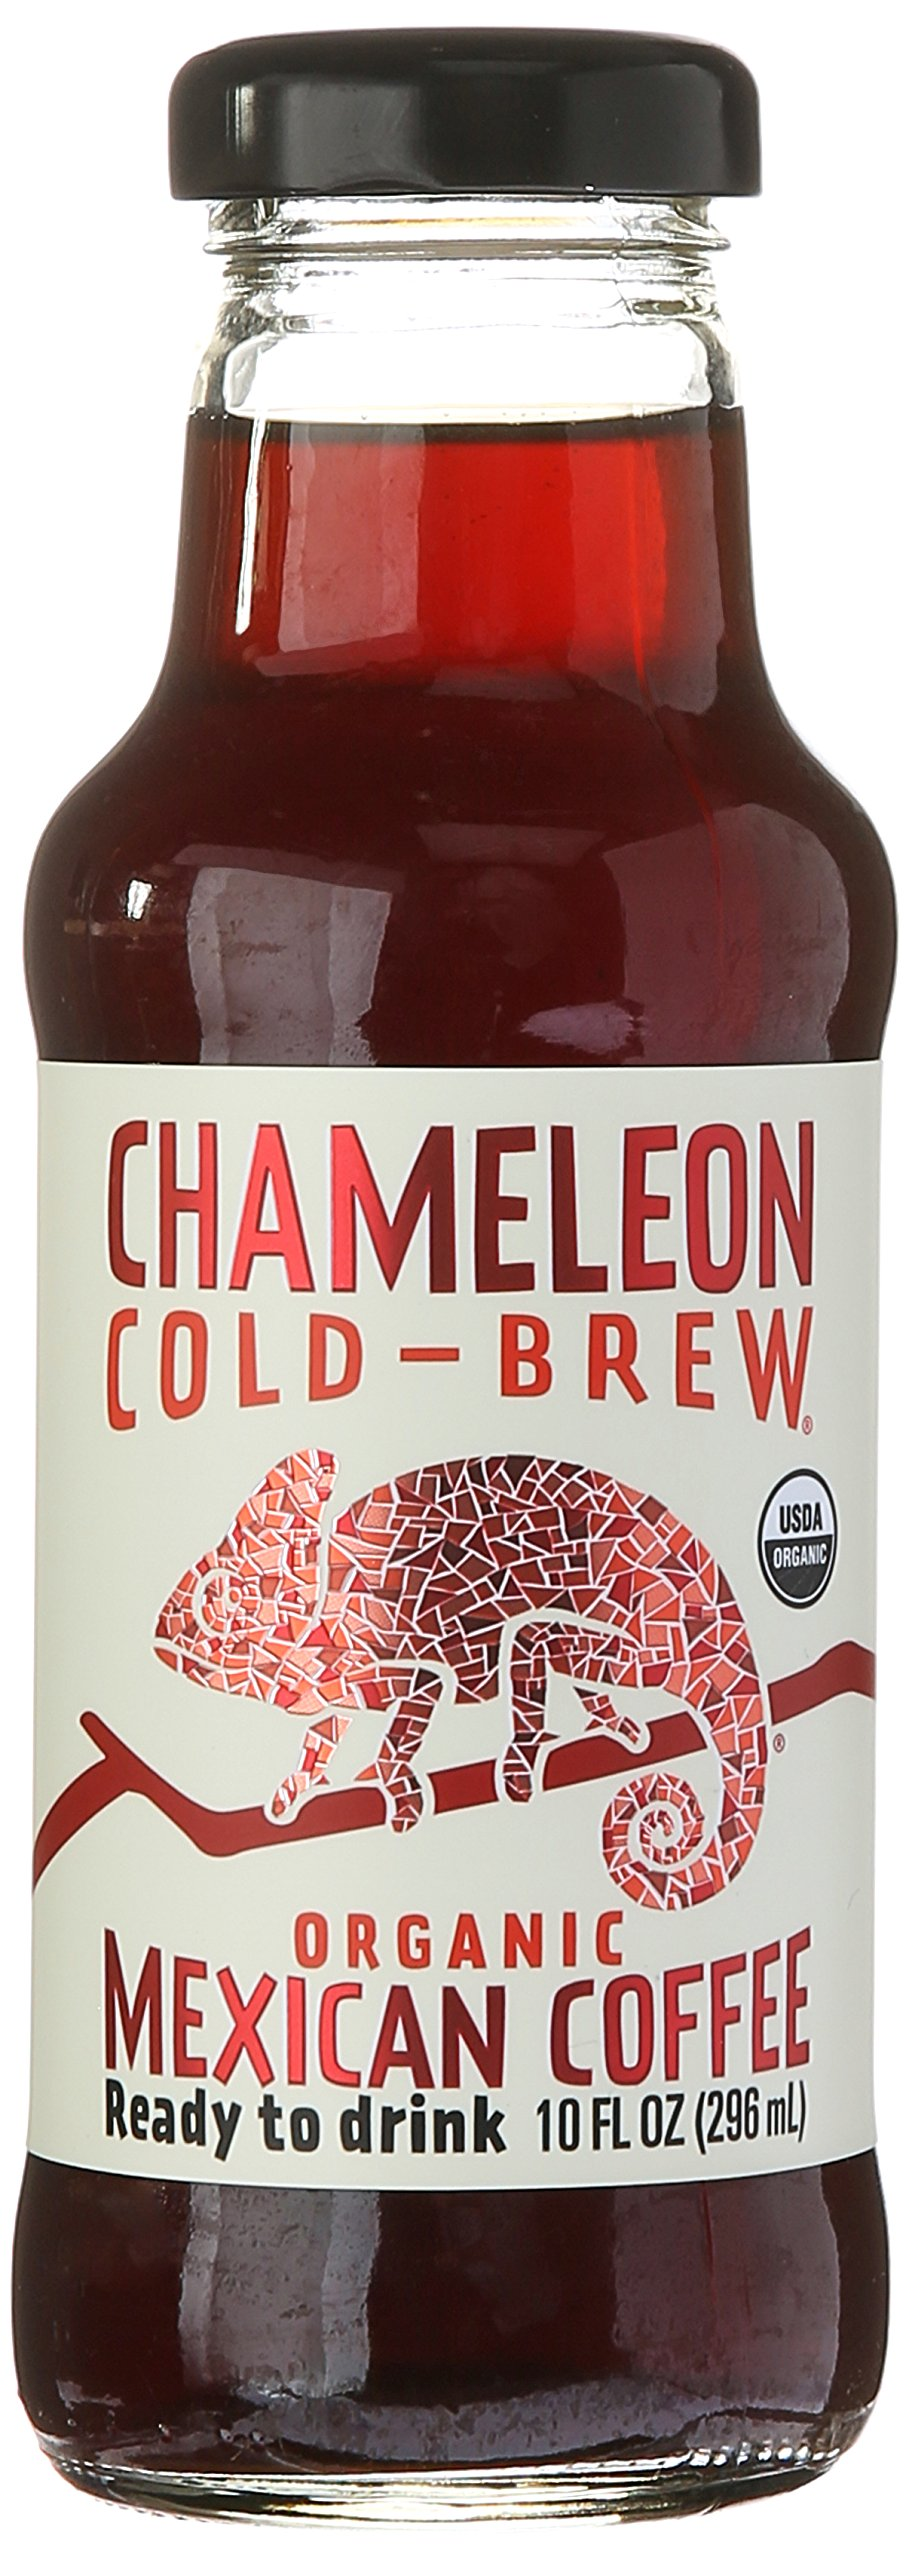 Chameleon Cold-Brew, Ready-to-Drink Mexican Coffee, 10 oz